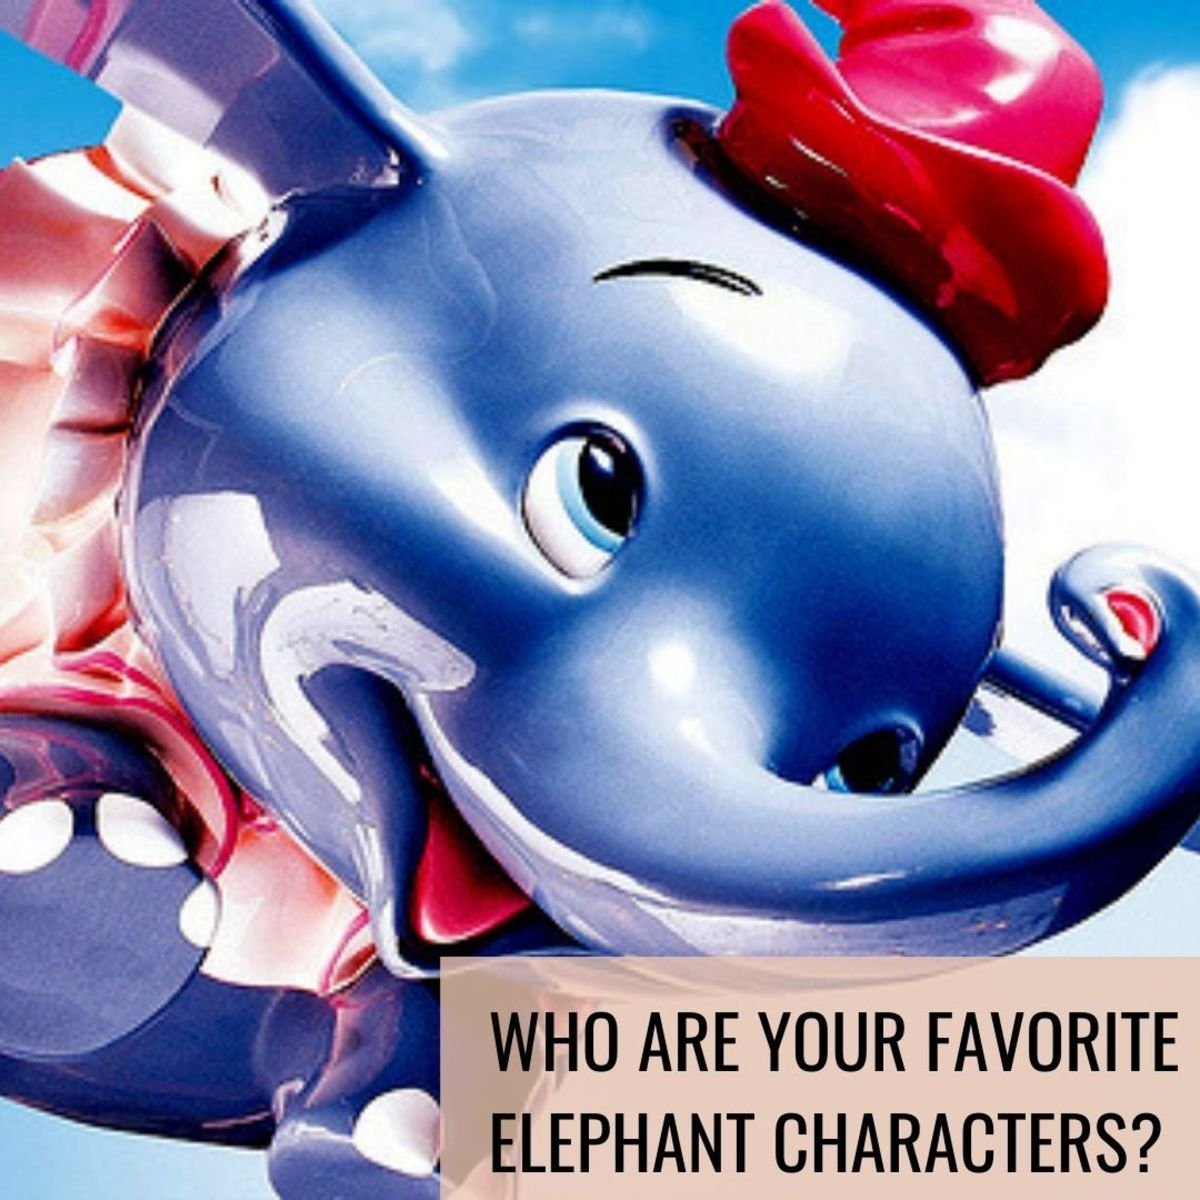 Elephants are one of the biggest living mammals in the animal kingdom, so who are your favorite elephant characters?